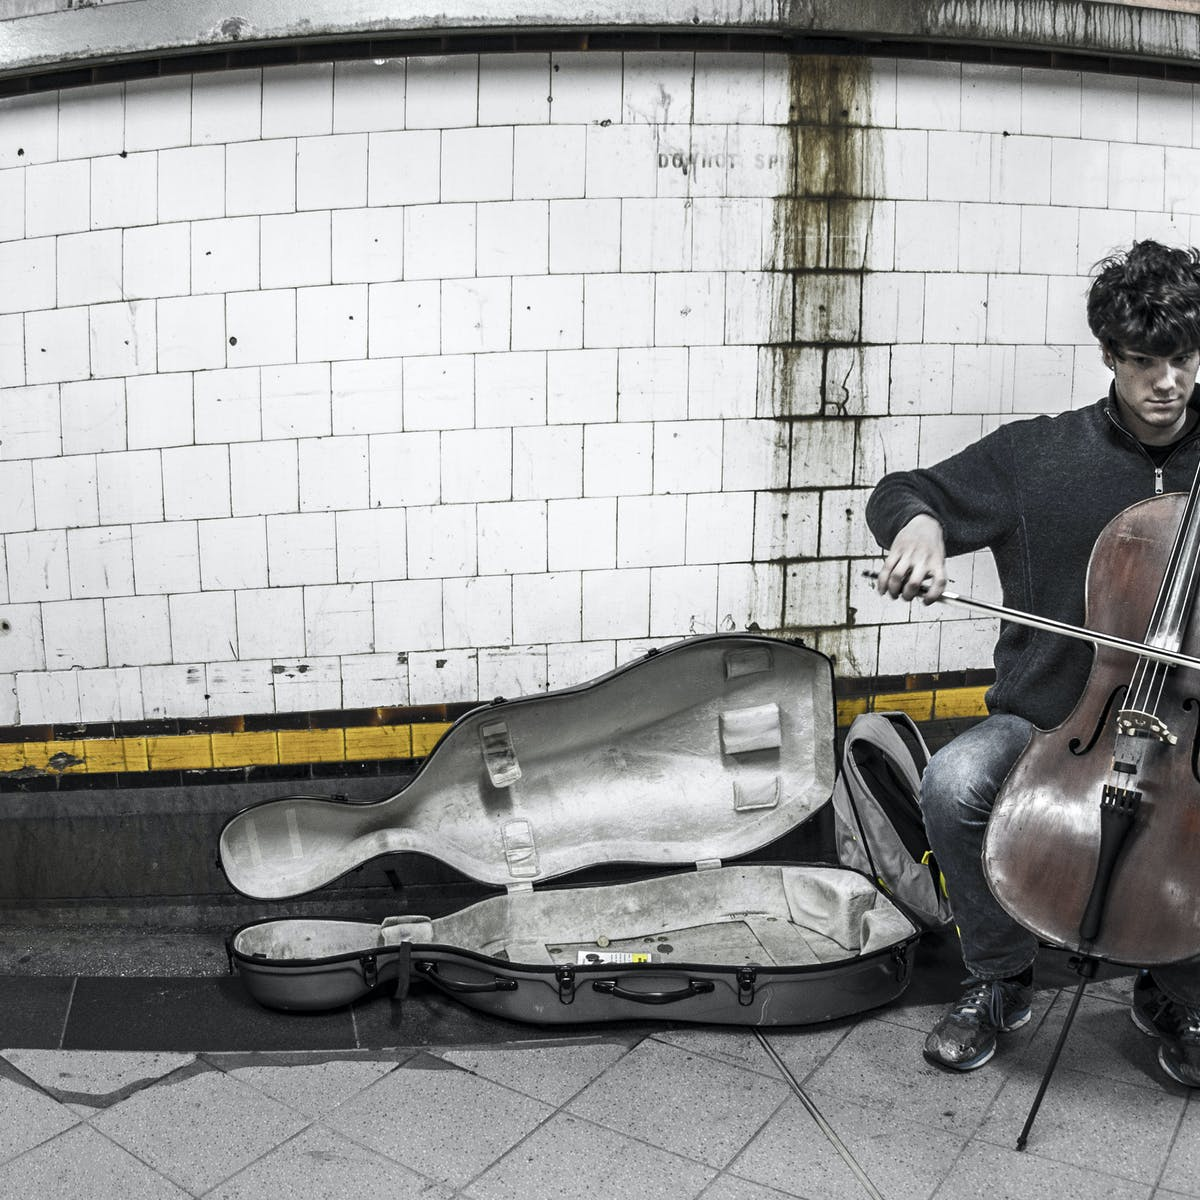 Buskers enrich our streets and laws don't have to hinder